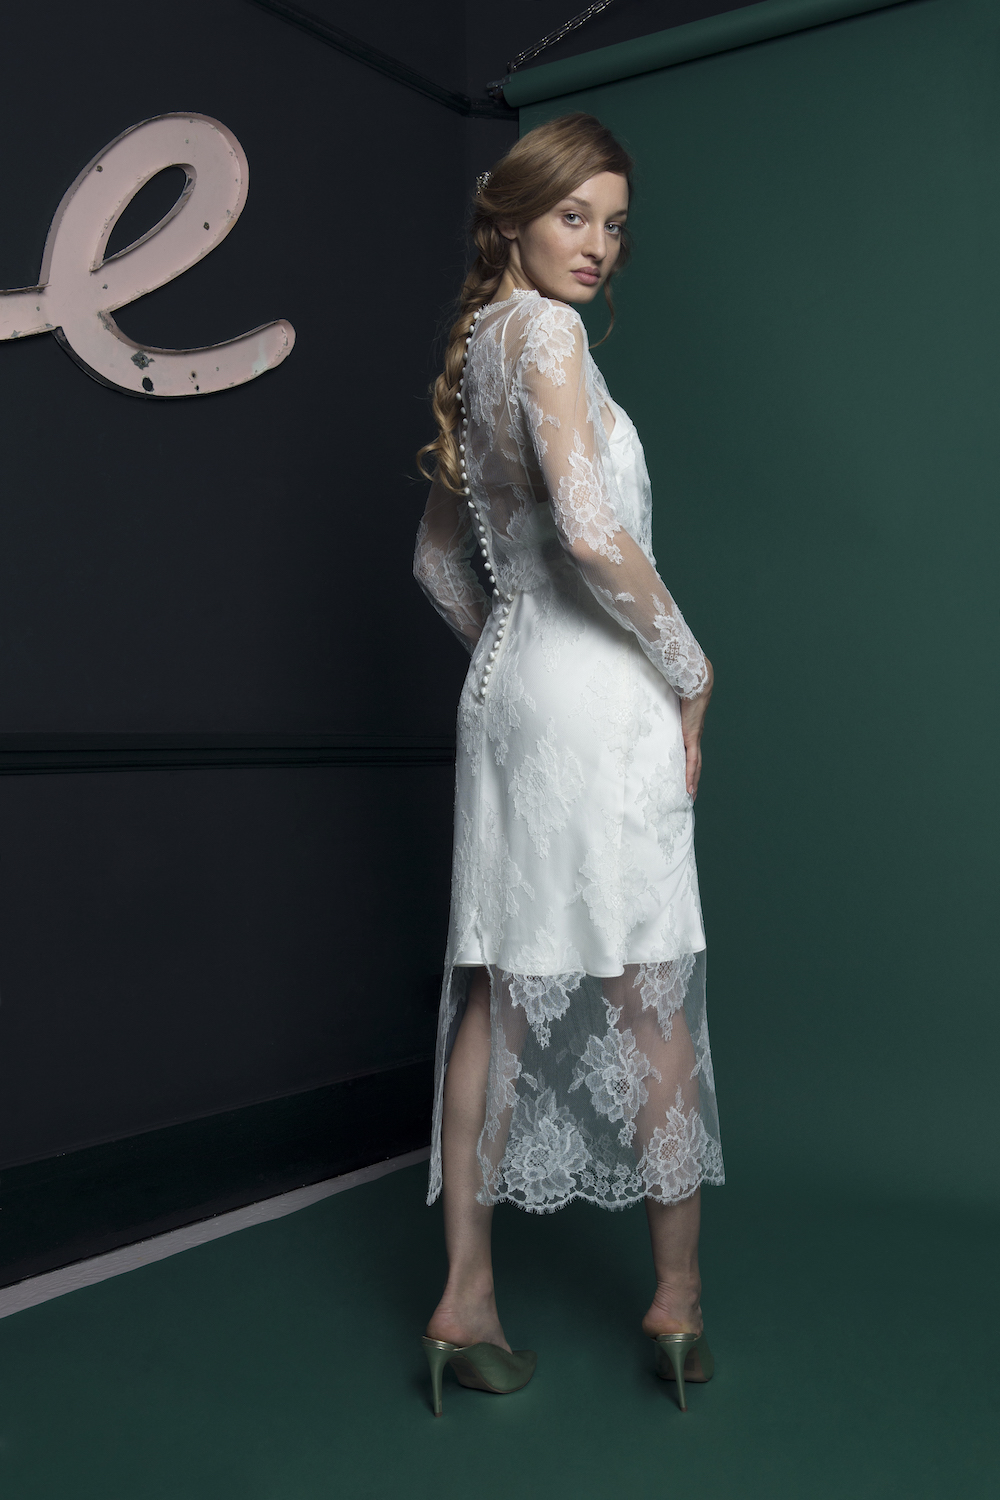 RIVER TOP & SKIRT | WEDDING DRESS BY HALFPENNY LONDON